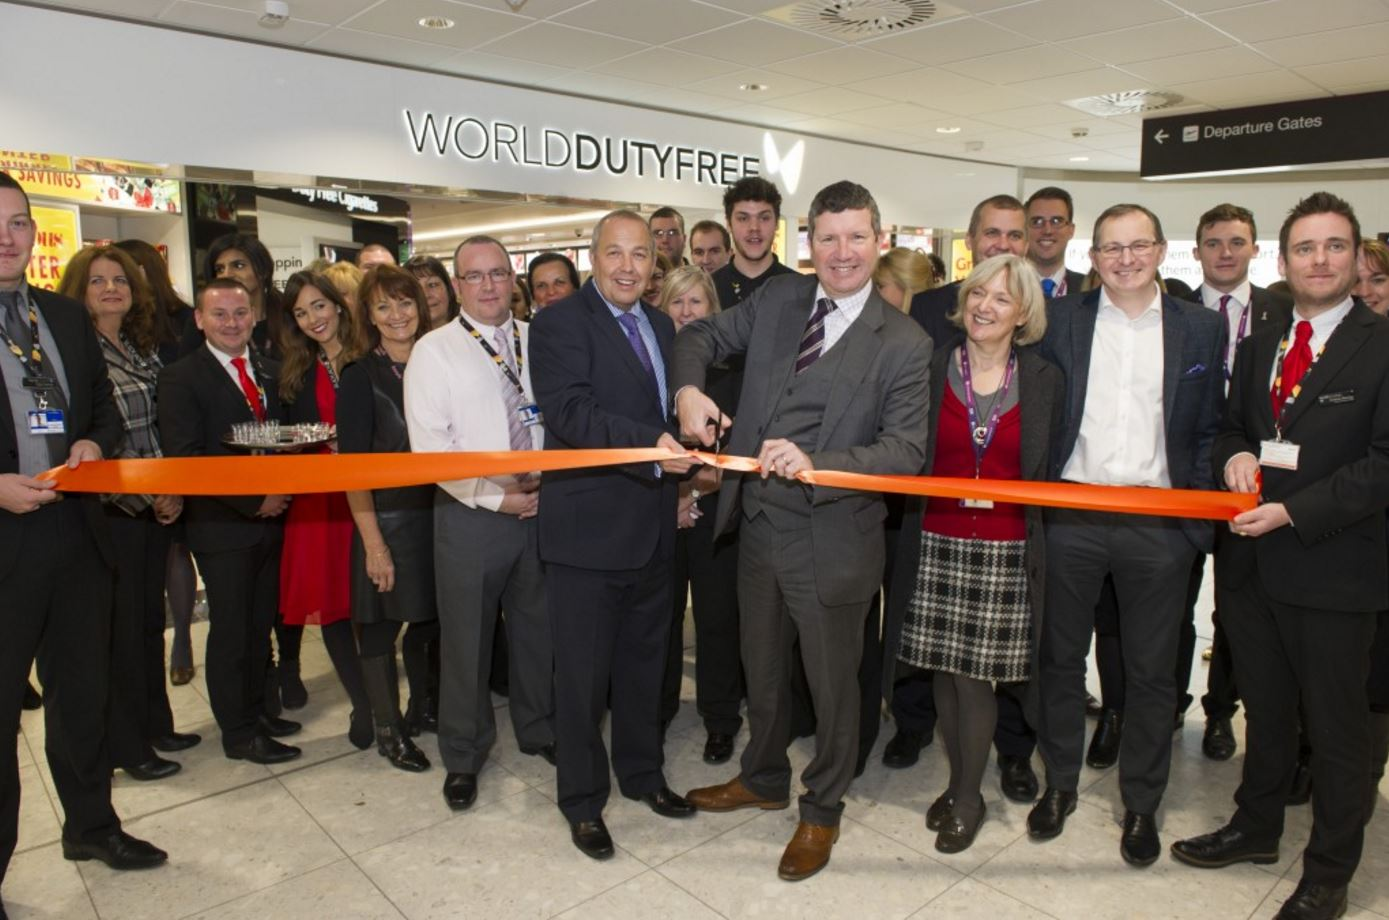 new wdf store in edinburgh creates 40 jobs world duty free. Black Bedroom Furniture Sets. Home Design Ideas